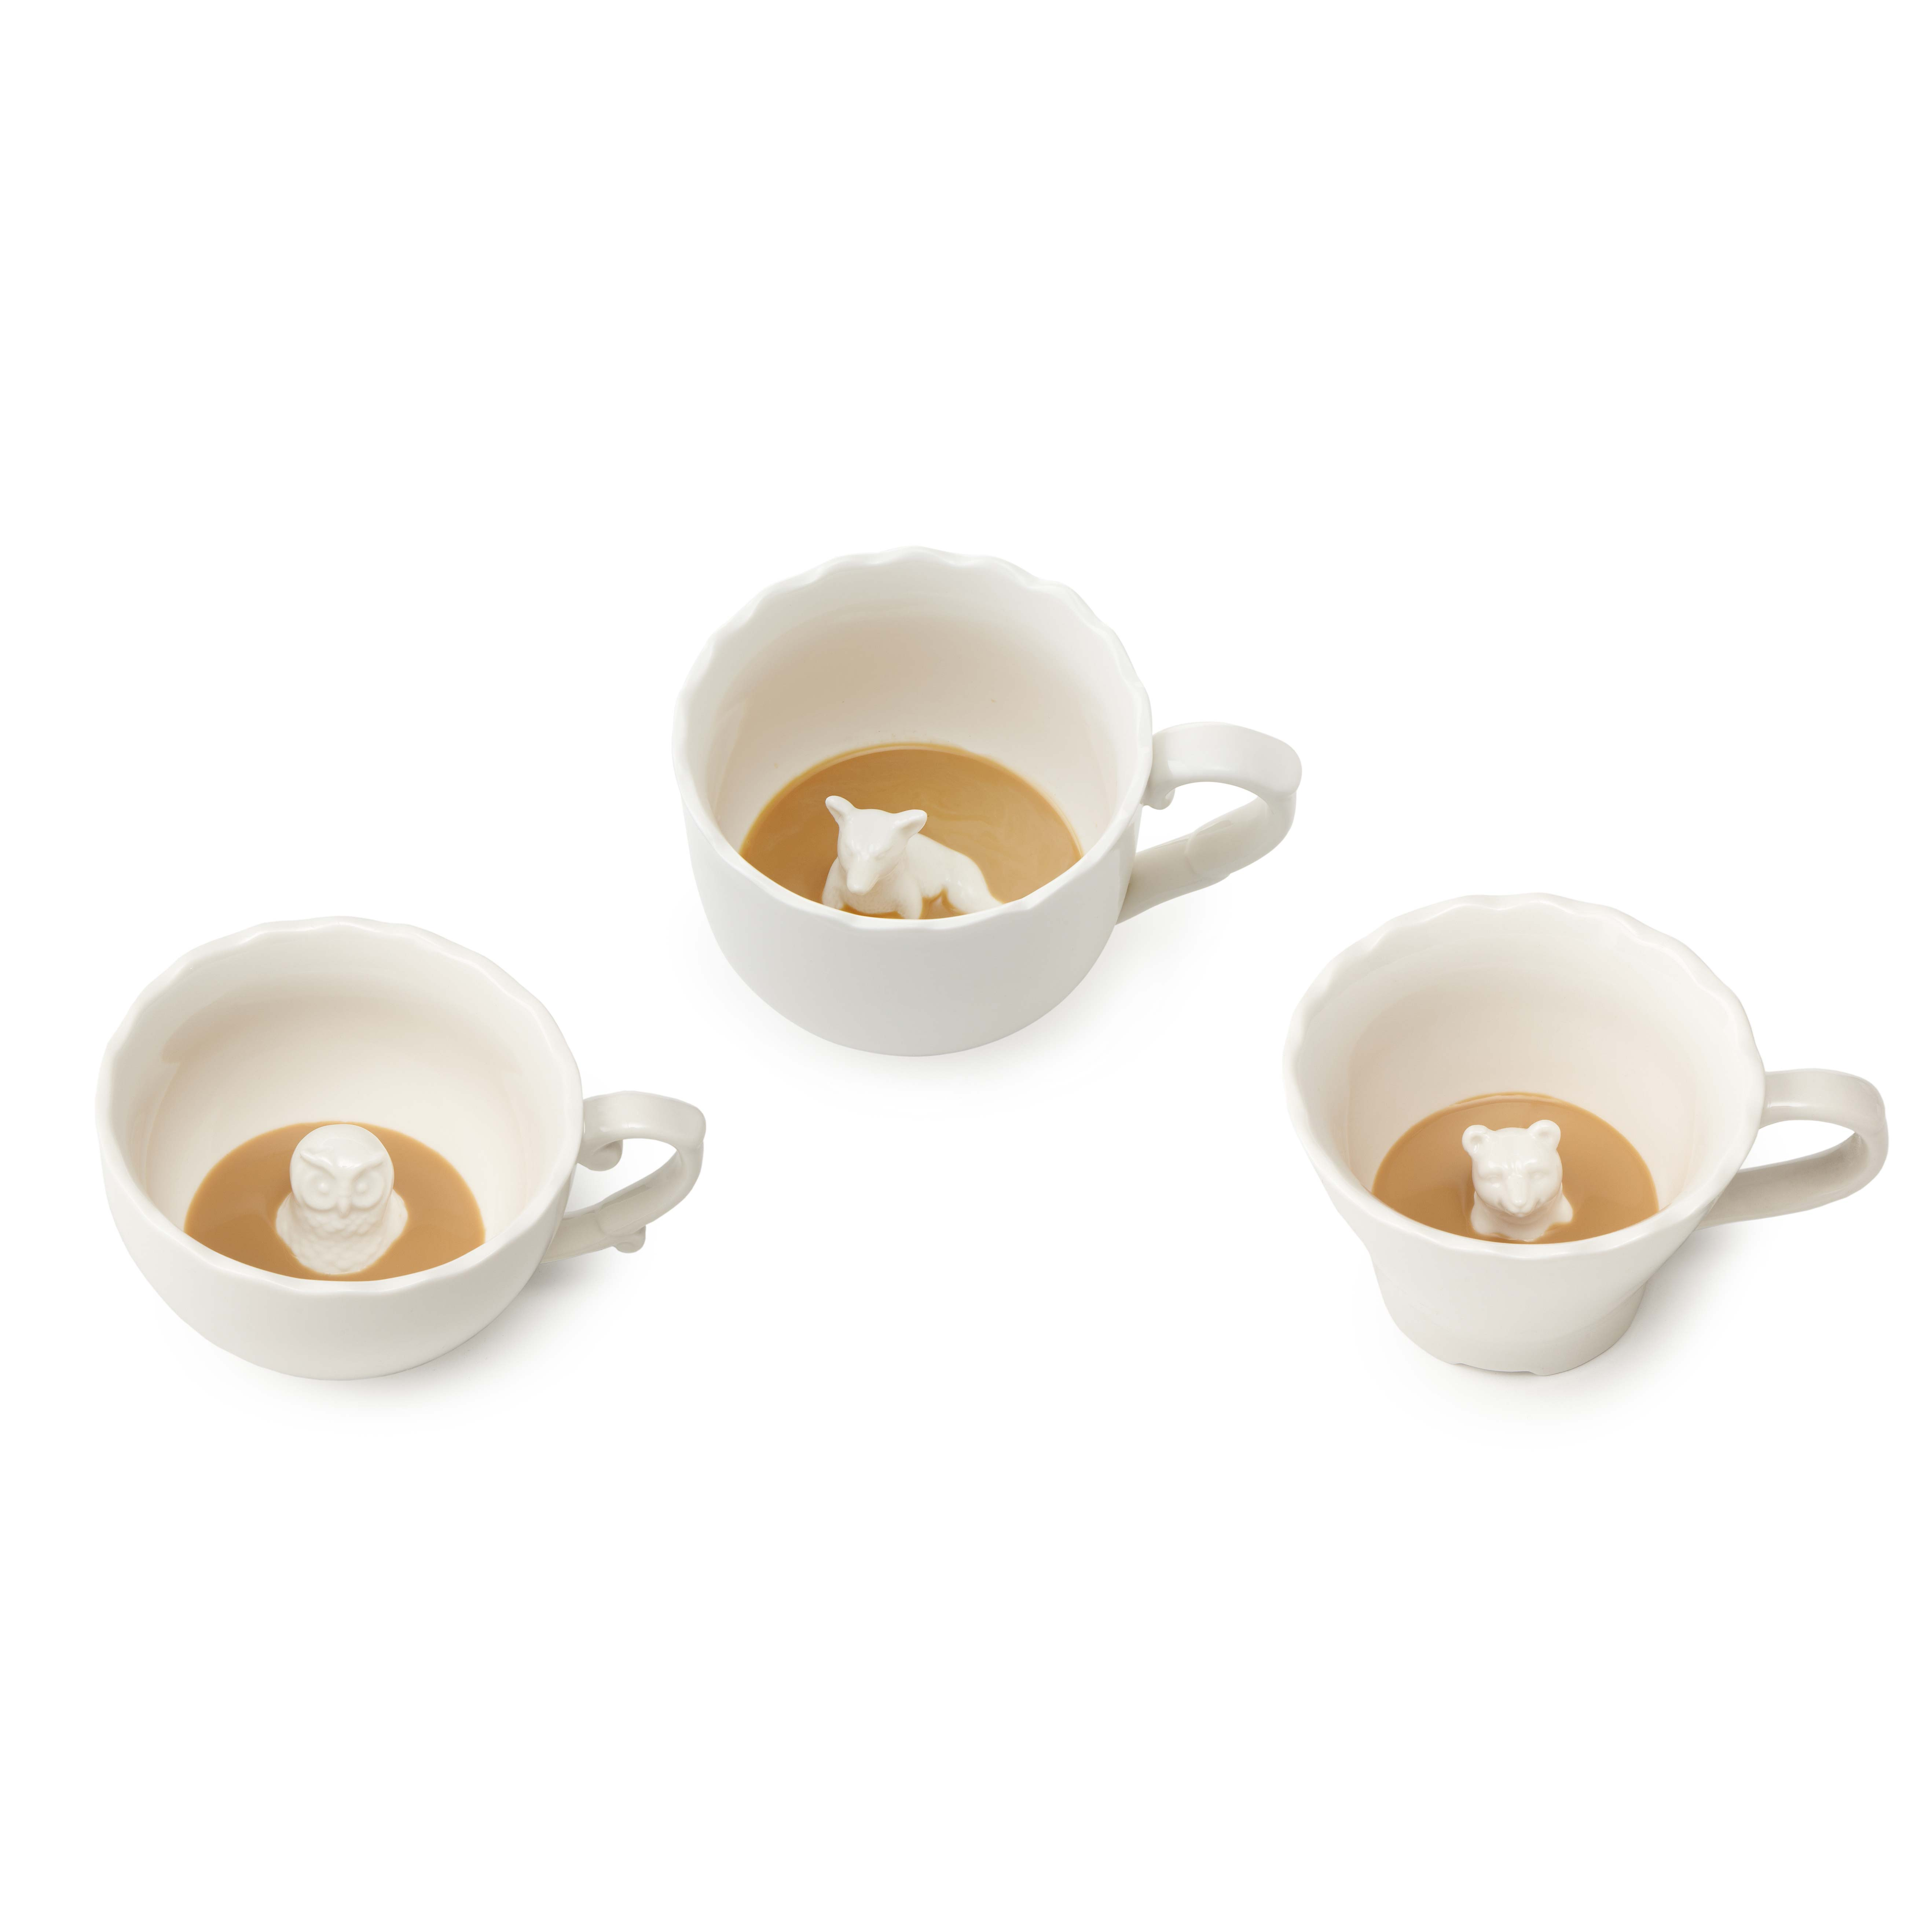 Animal Coffee Cups Hidden Animal Mugs White Ceramic Tea Cup Uncommongoods